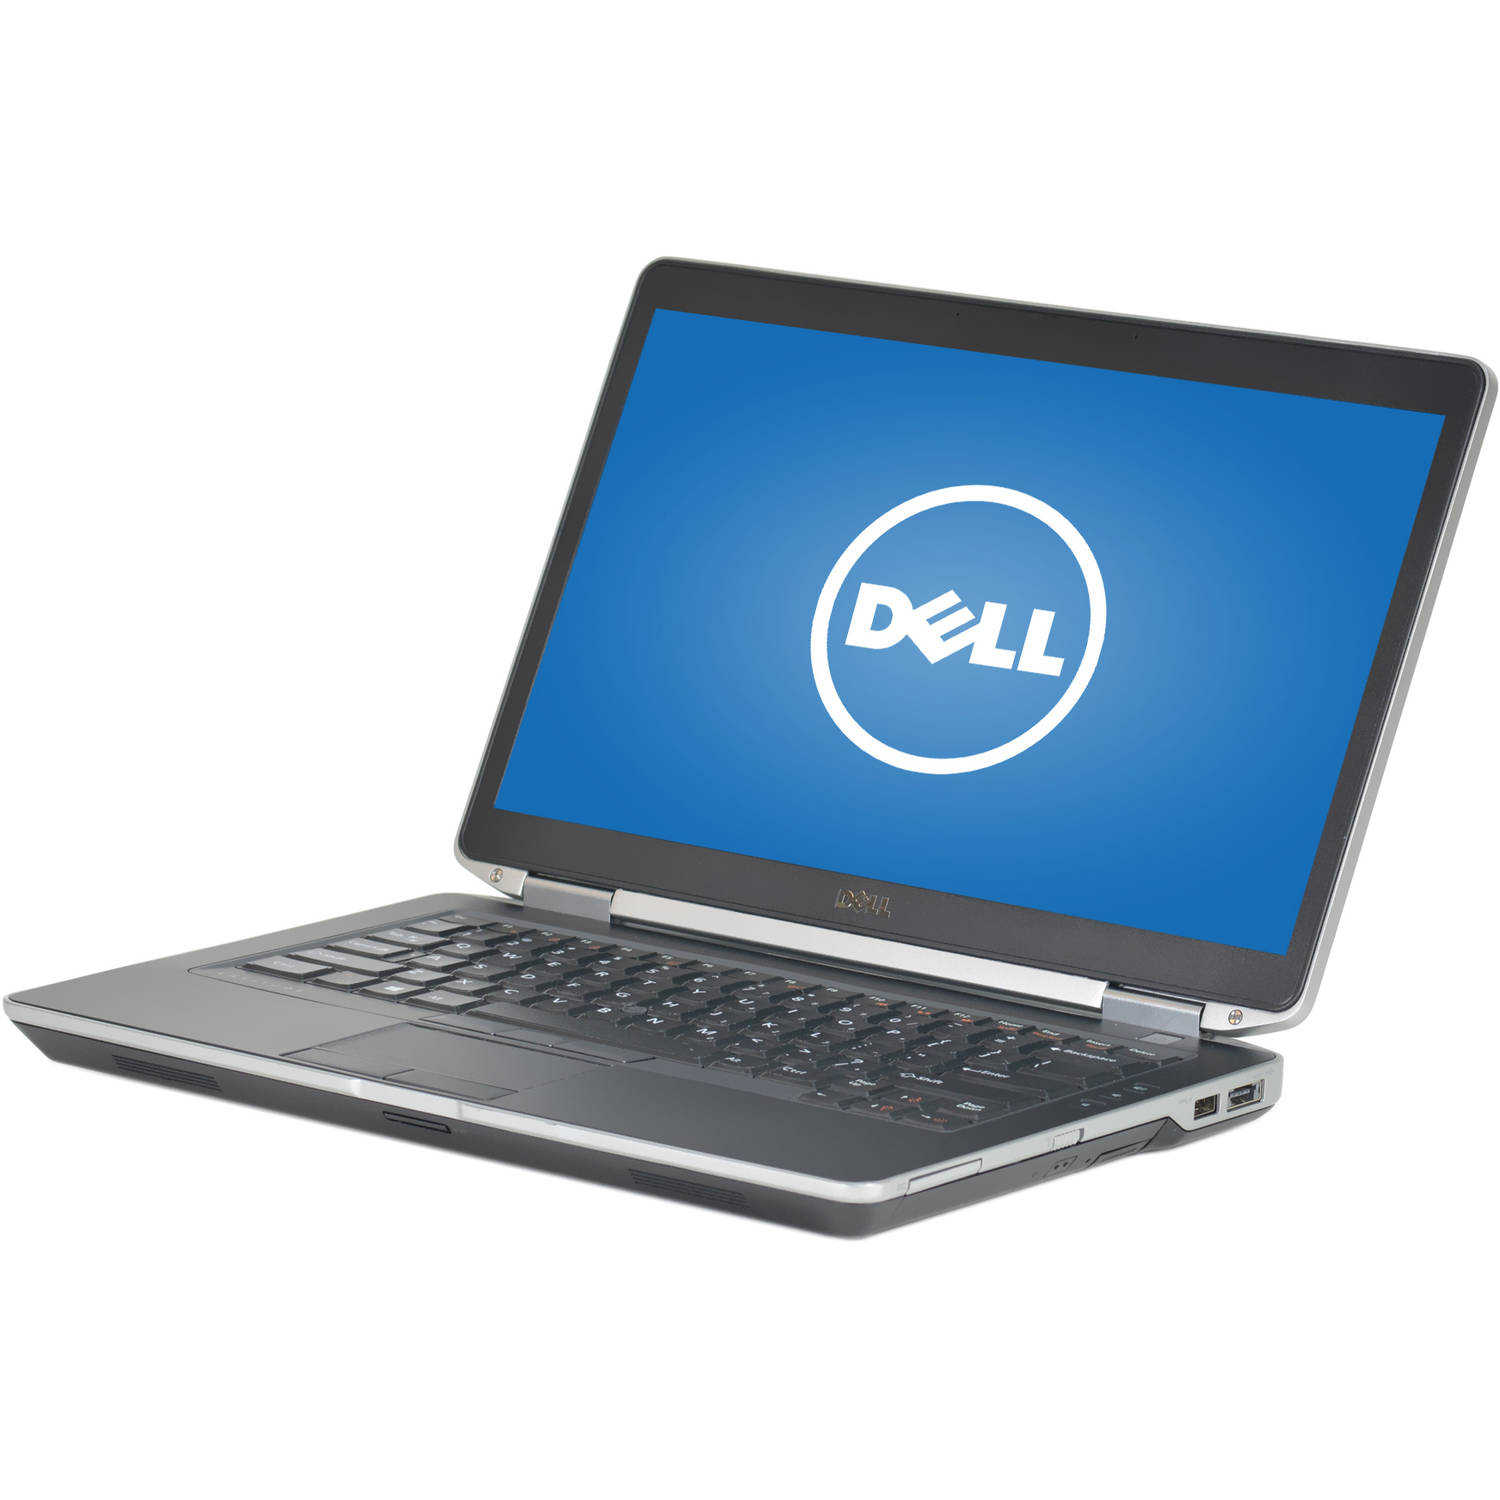 Refurbished Dell 14' Latitude E6430S WA5-0868 Laptop PC with Intel Core i5-3320M Processor, 8GB Memory, 128GB Solid State Drive and Windows 10 Pro